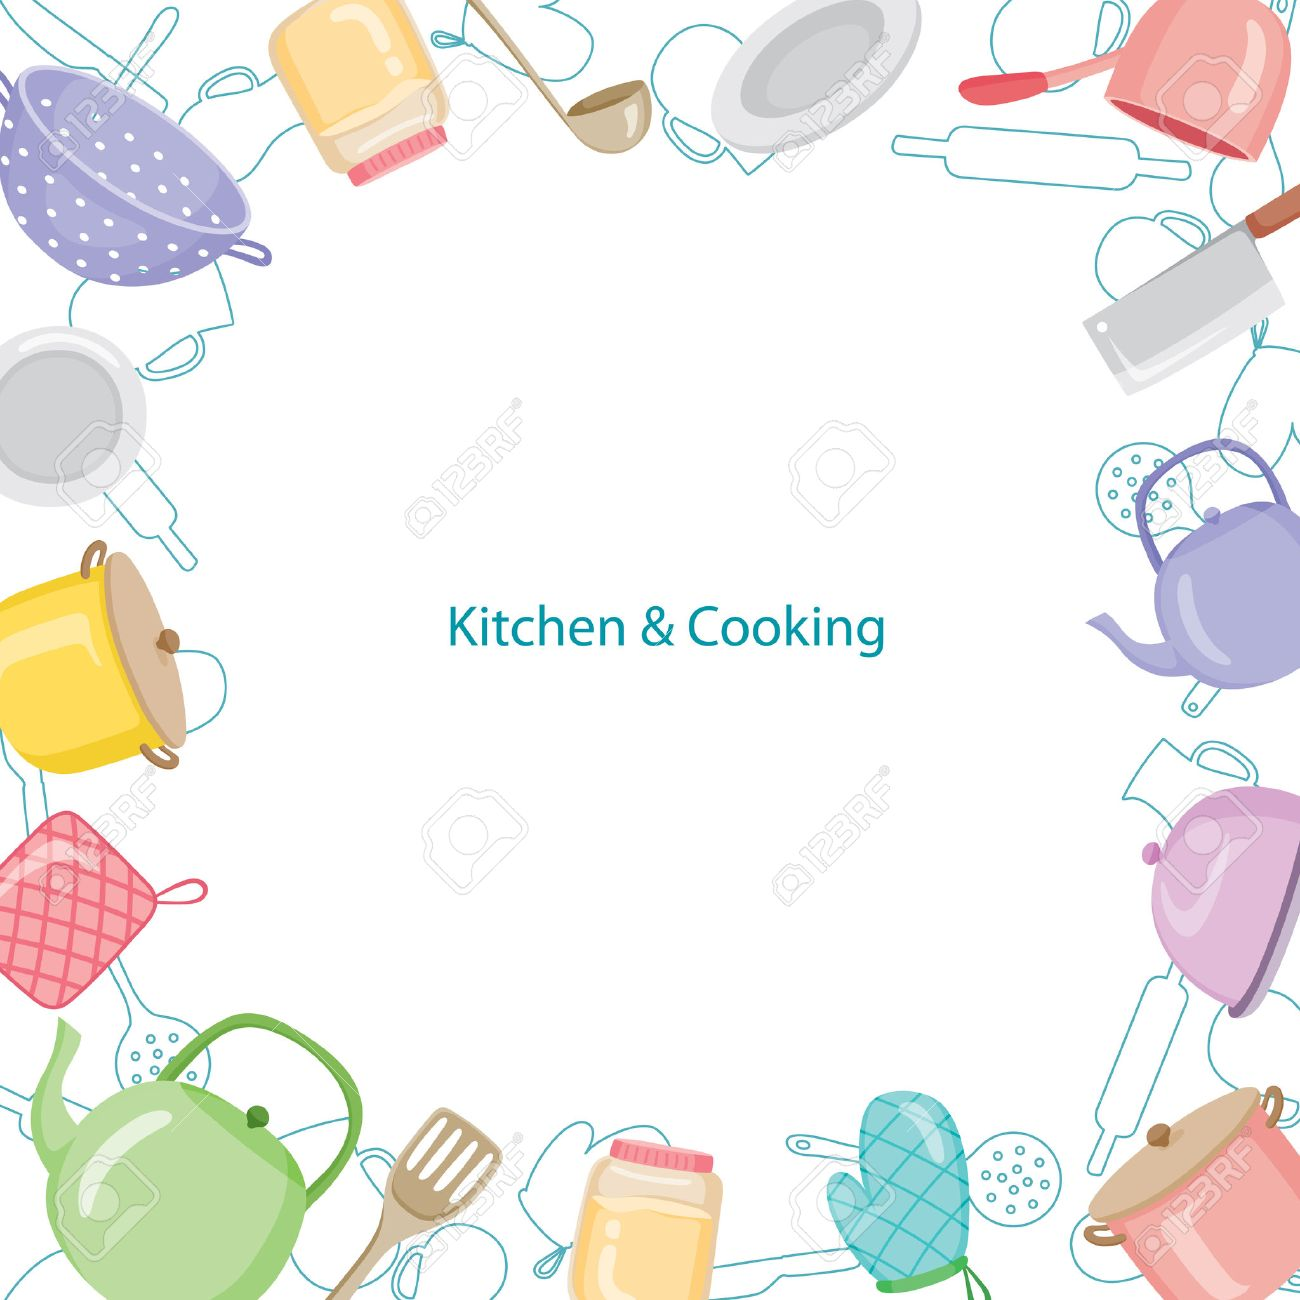 Kitchen Equipment Border, Kitchen, Kitchenware, Crockery, Cooking,...